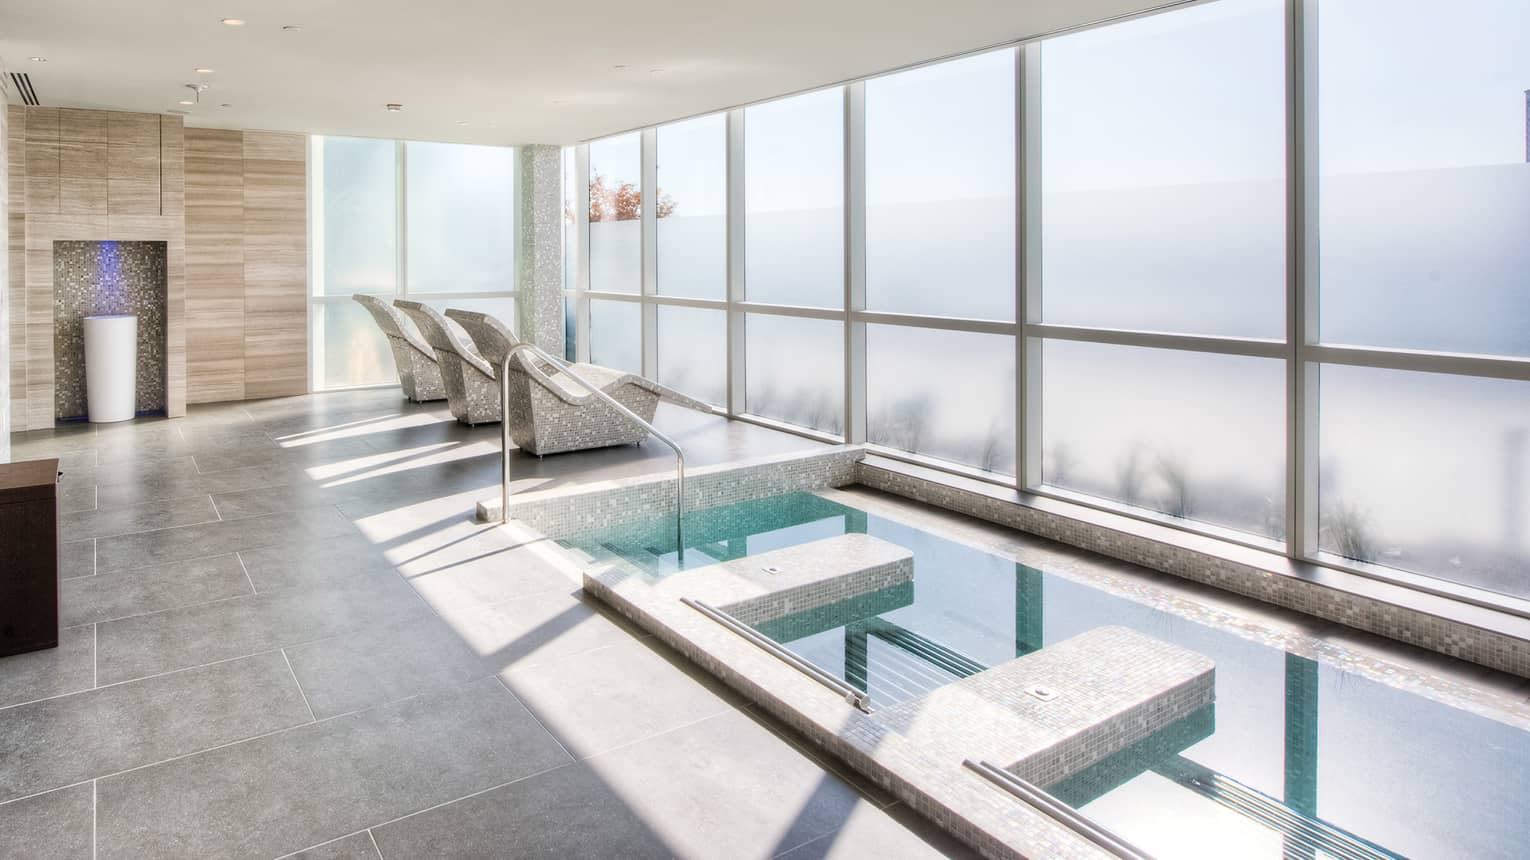 Spa plunge pool on grey tile deck, three stone chairs facing wall of windows